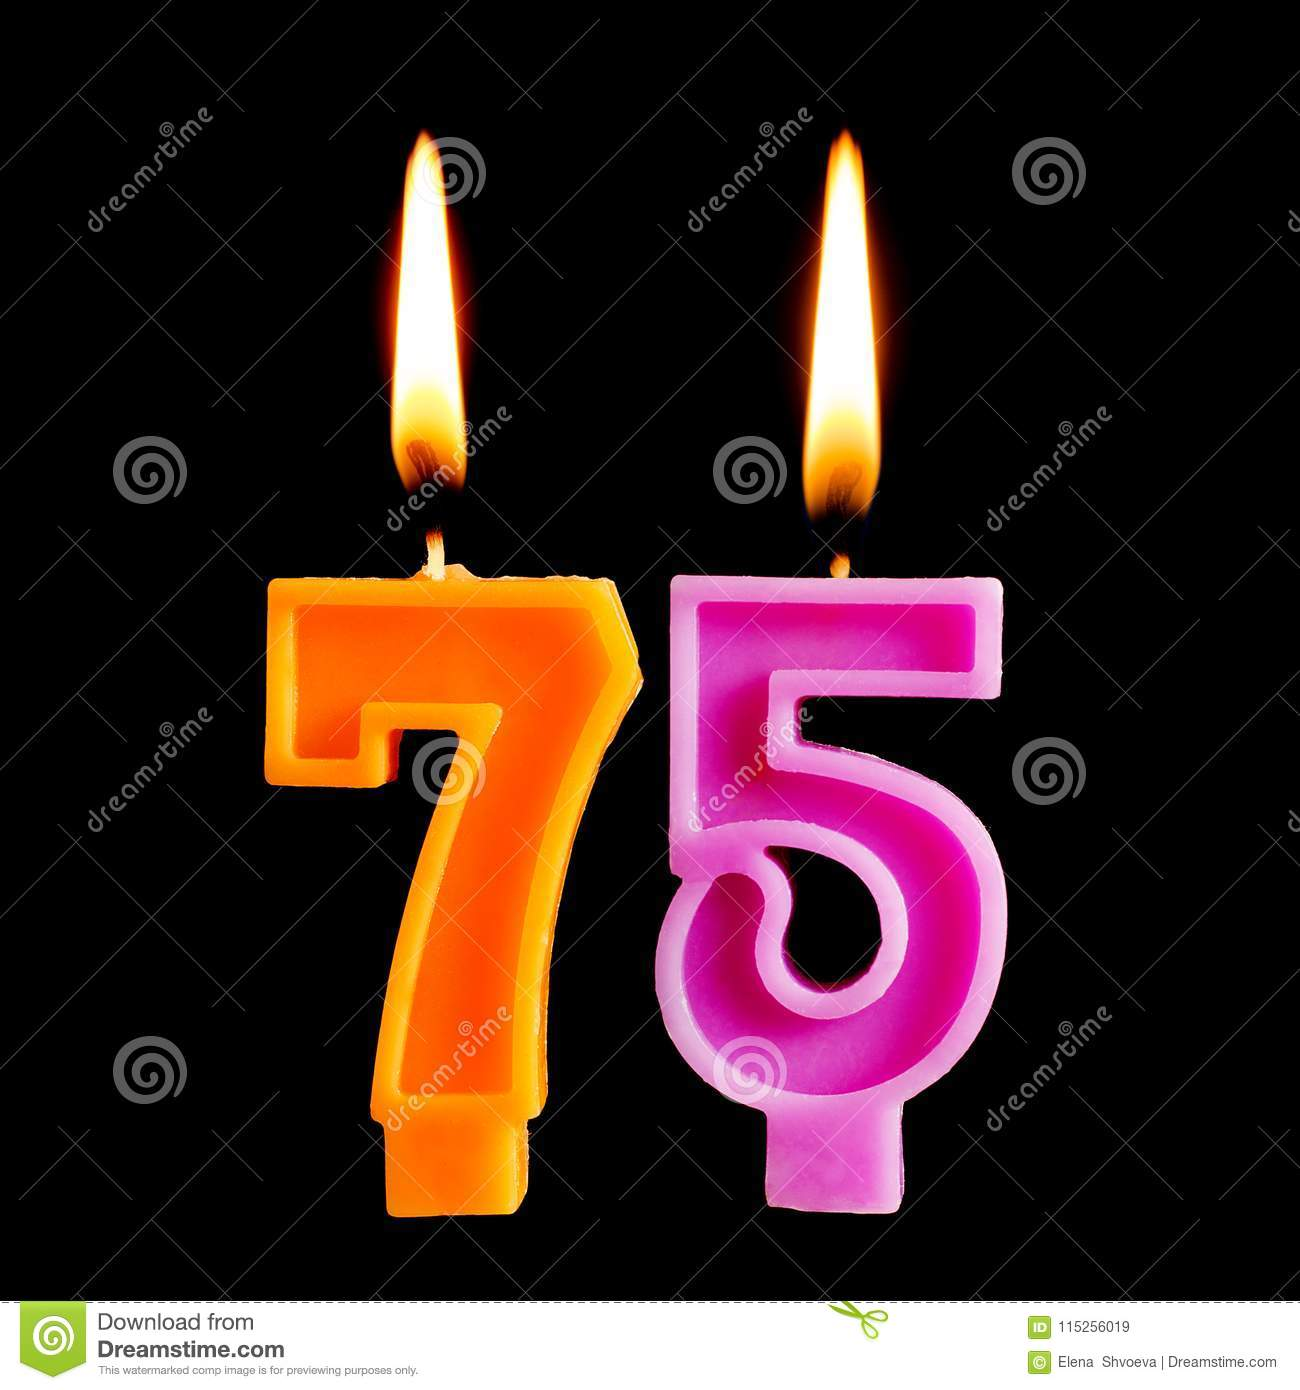 Burning Birthday Candles In The Form Of 75 Seventy Five Figures For Cake Isolated On Black